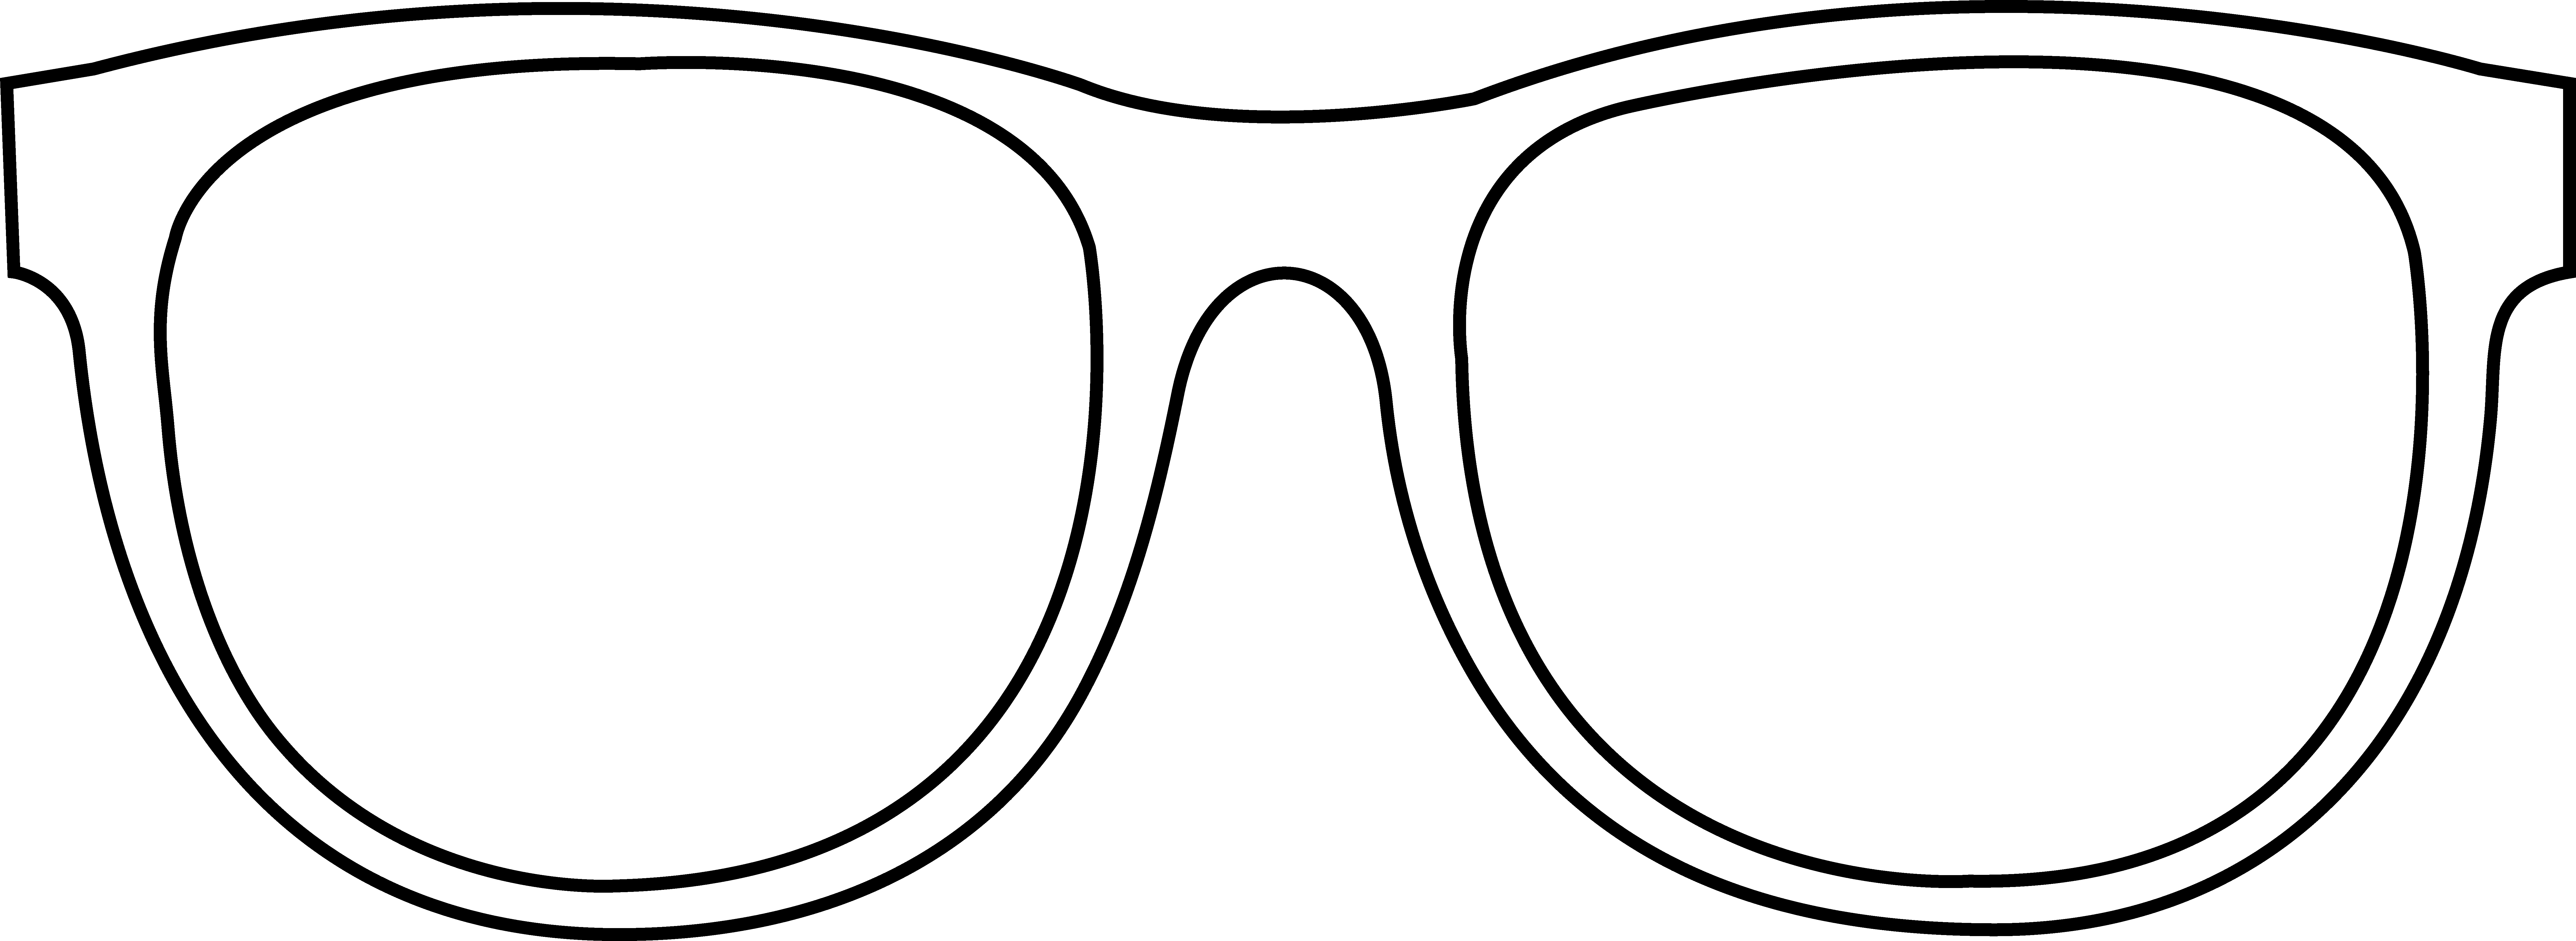 image royalty free stock Line art cylch meithrin. Vector bulldog sunglasses clipart